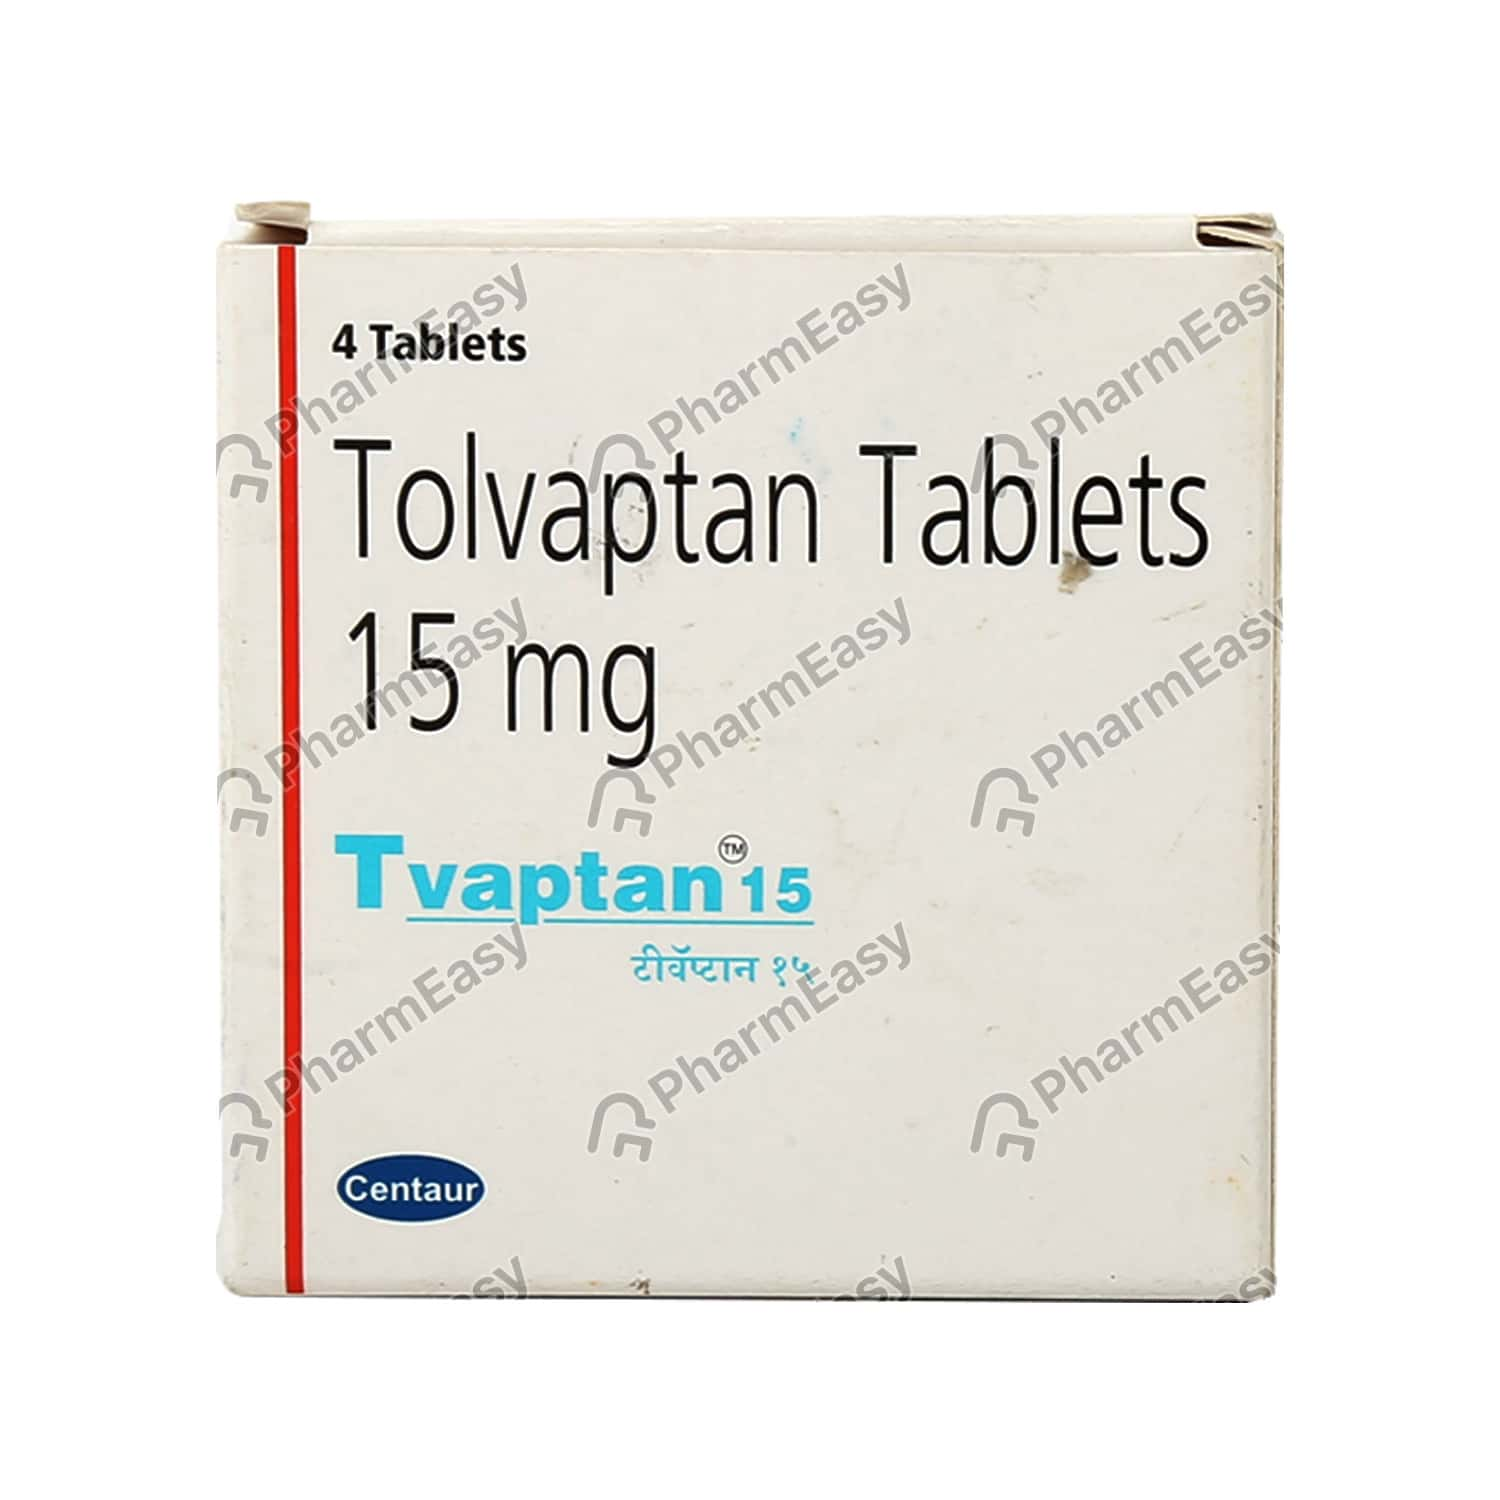 Tvaptan 15mg Tablet